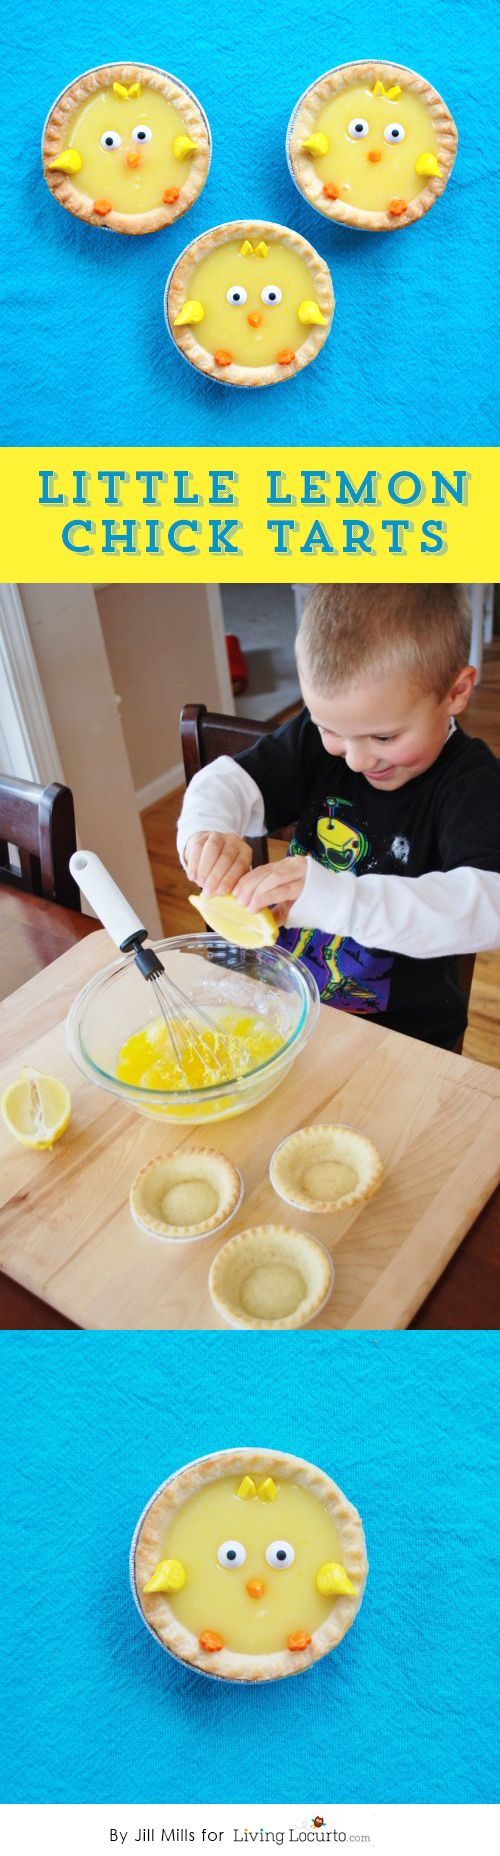 How to Make Little Chick Lemon Tarts. A Cute No Bake Recipe and Party Idea for Kids! LivingLocurto.com